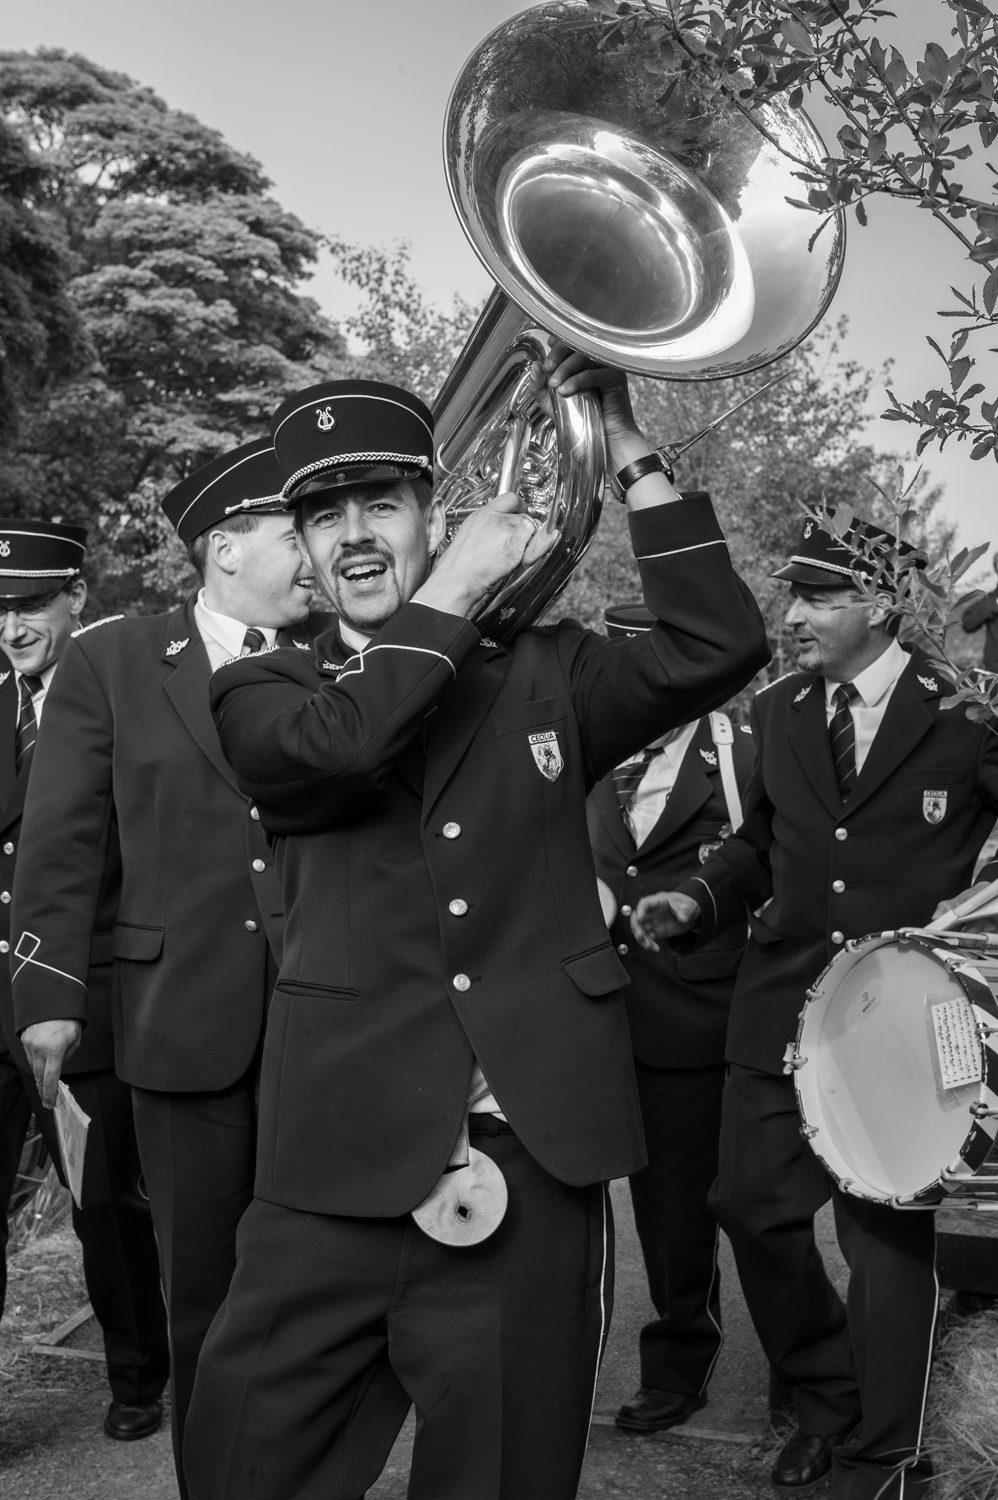 whit friday bandsman documentary photography stuart coleman